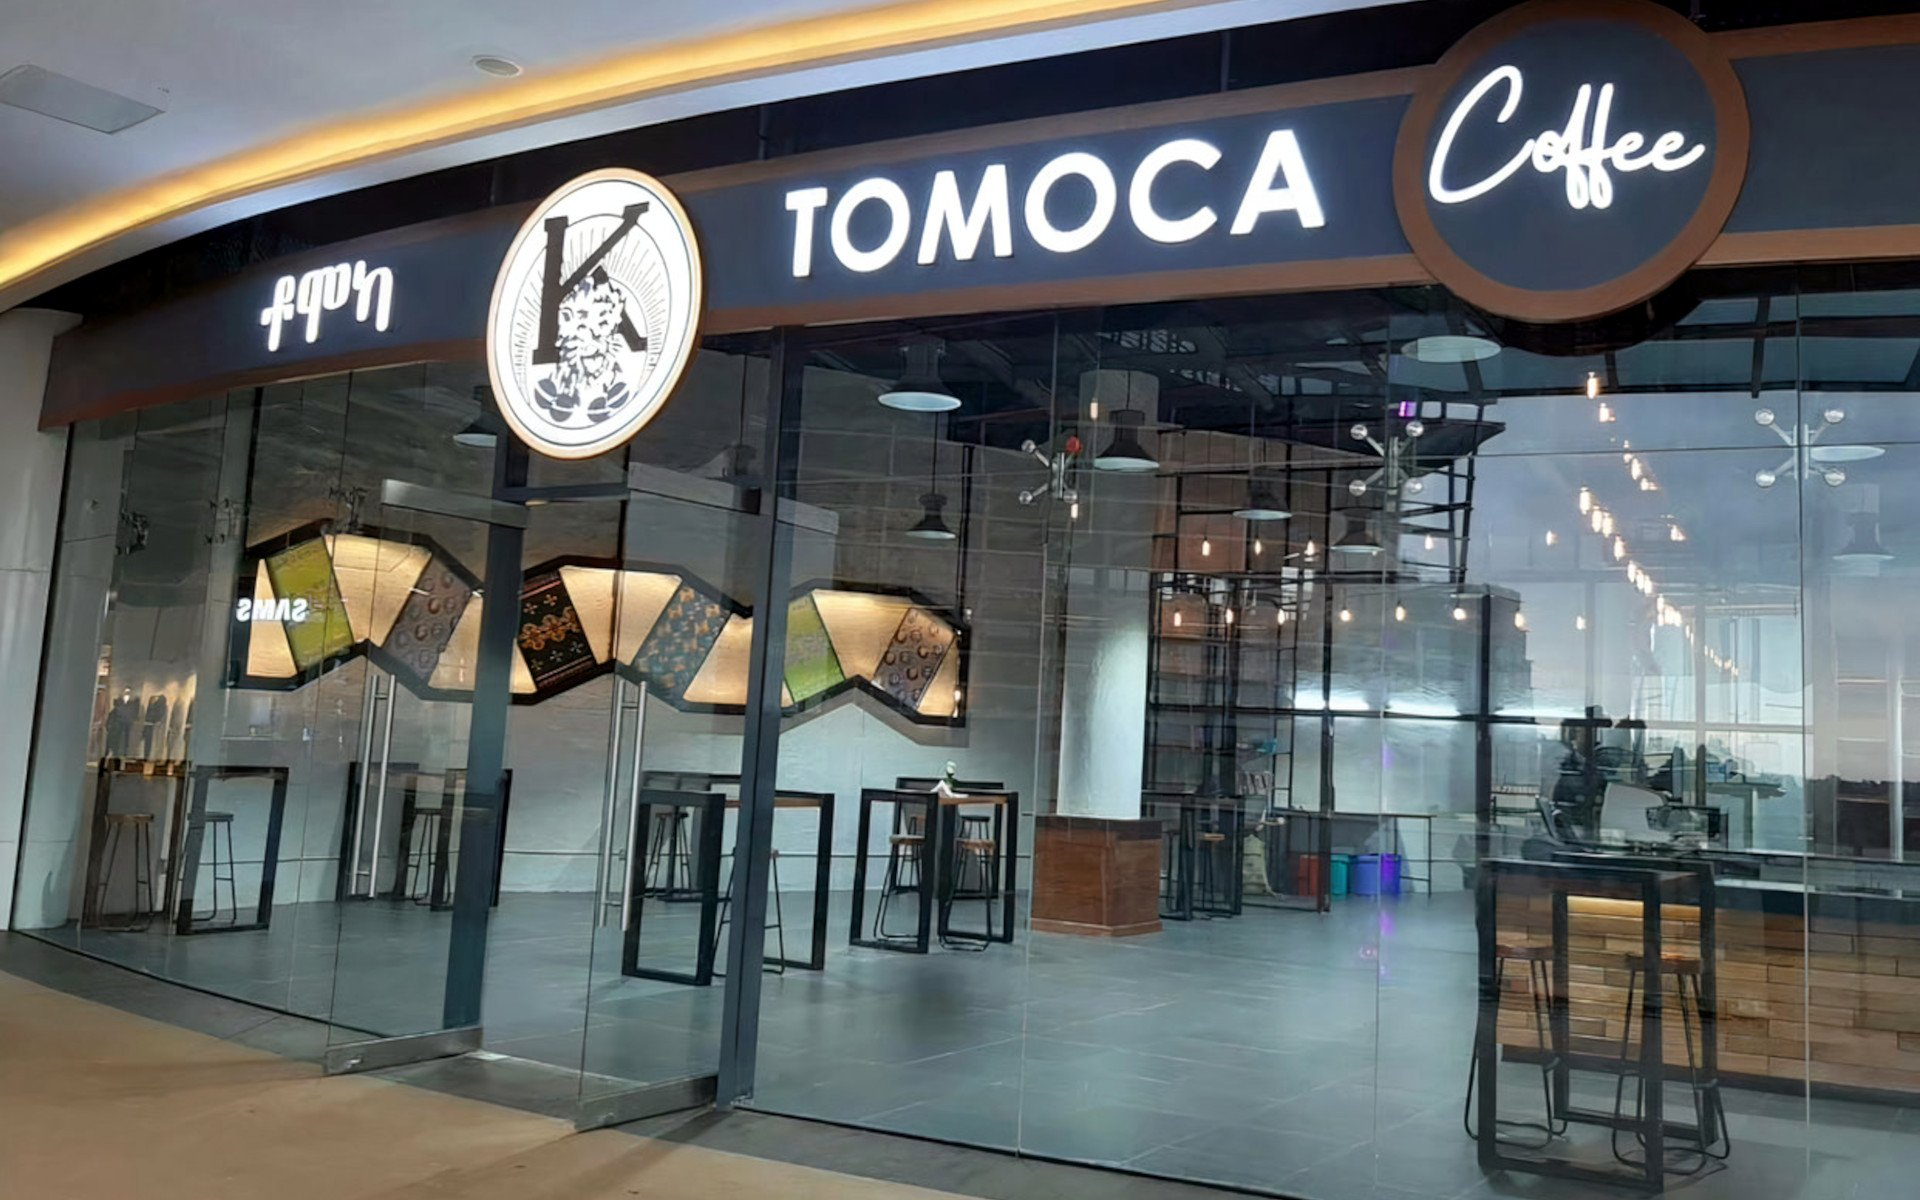 You now have a new excuse to visit The Two Rivers Mall. If only to indulge in a Macchiato, Sprice or Cravato coffee at the Tomoca Coffee shop.